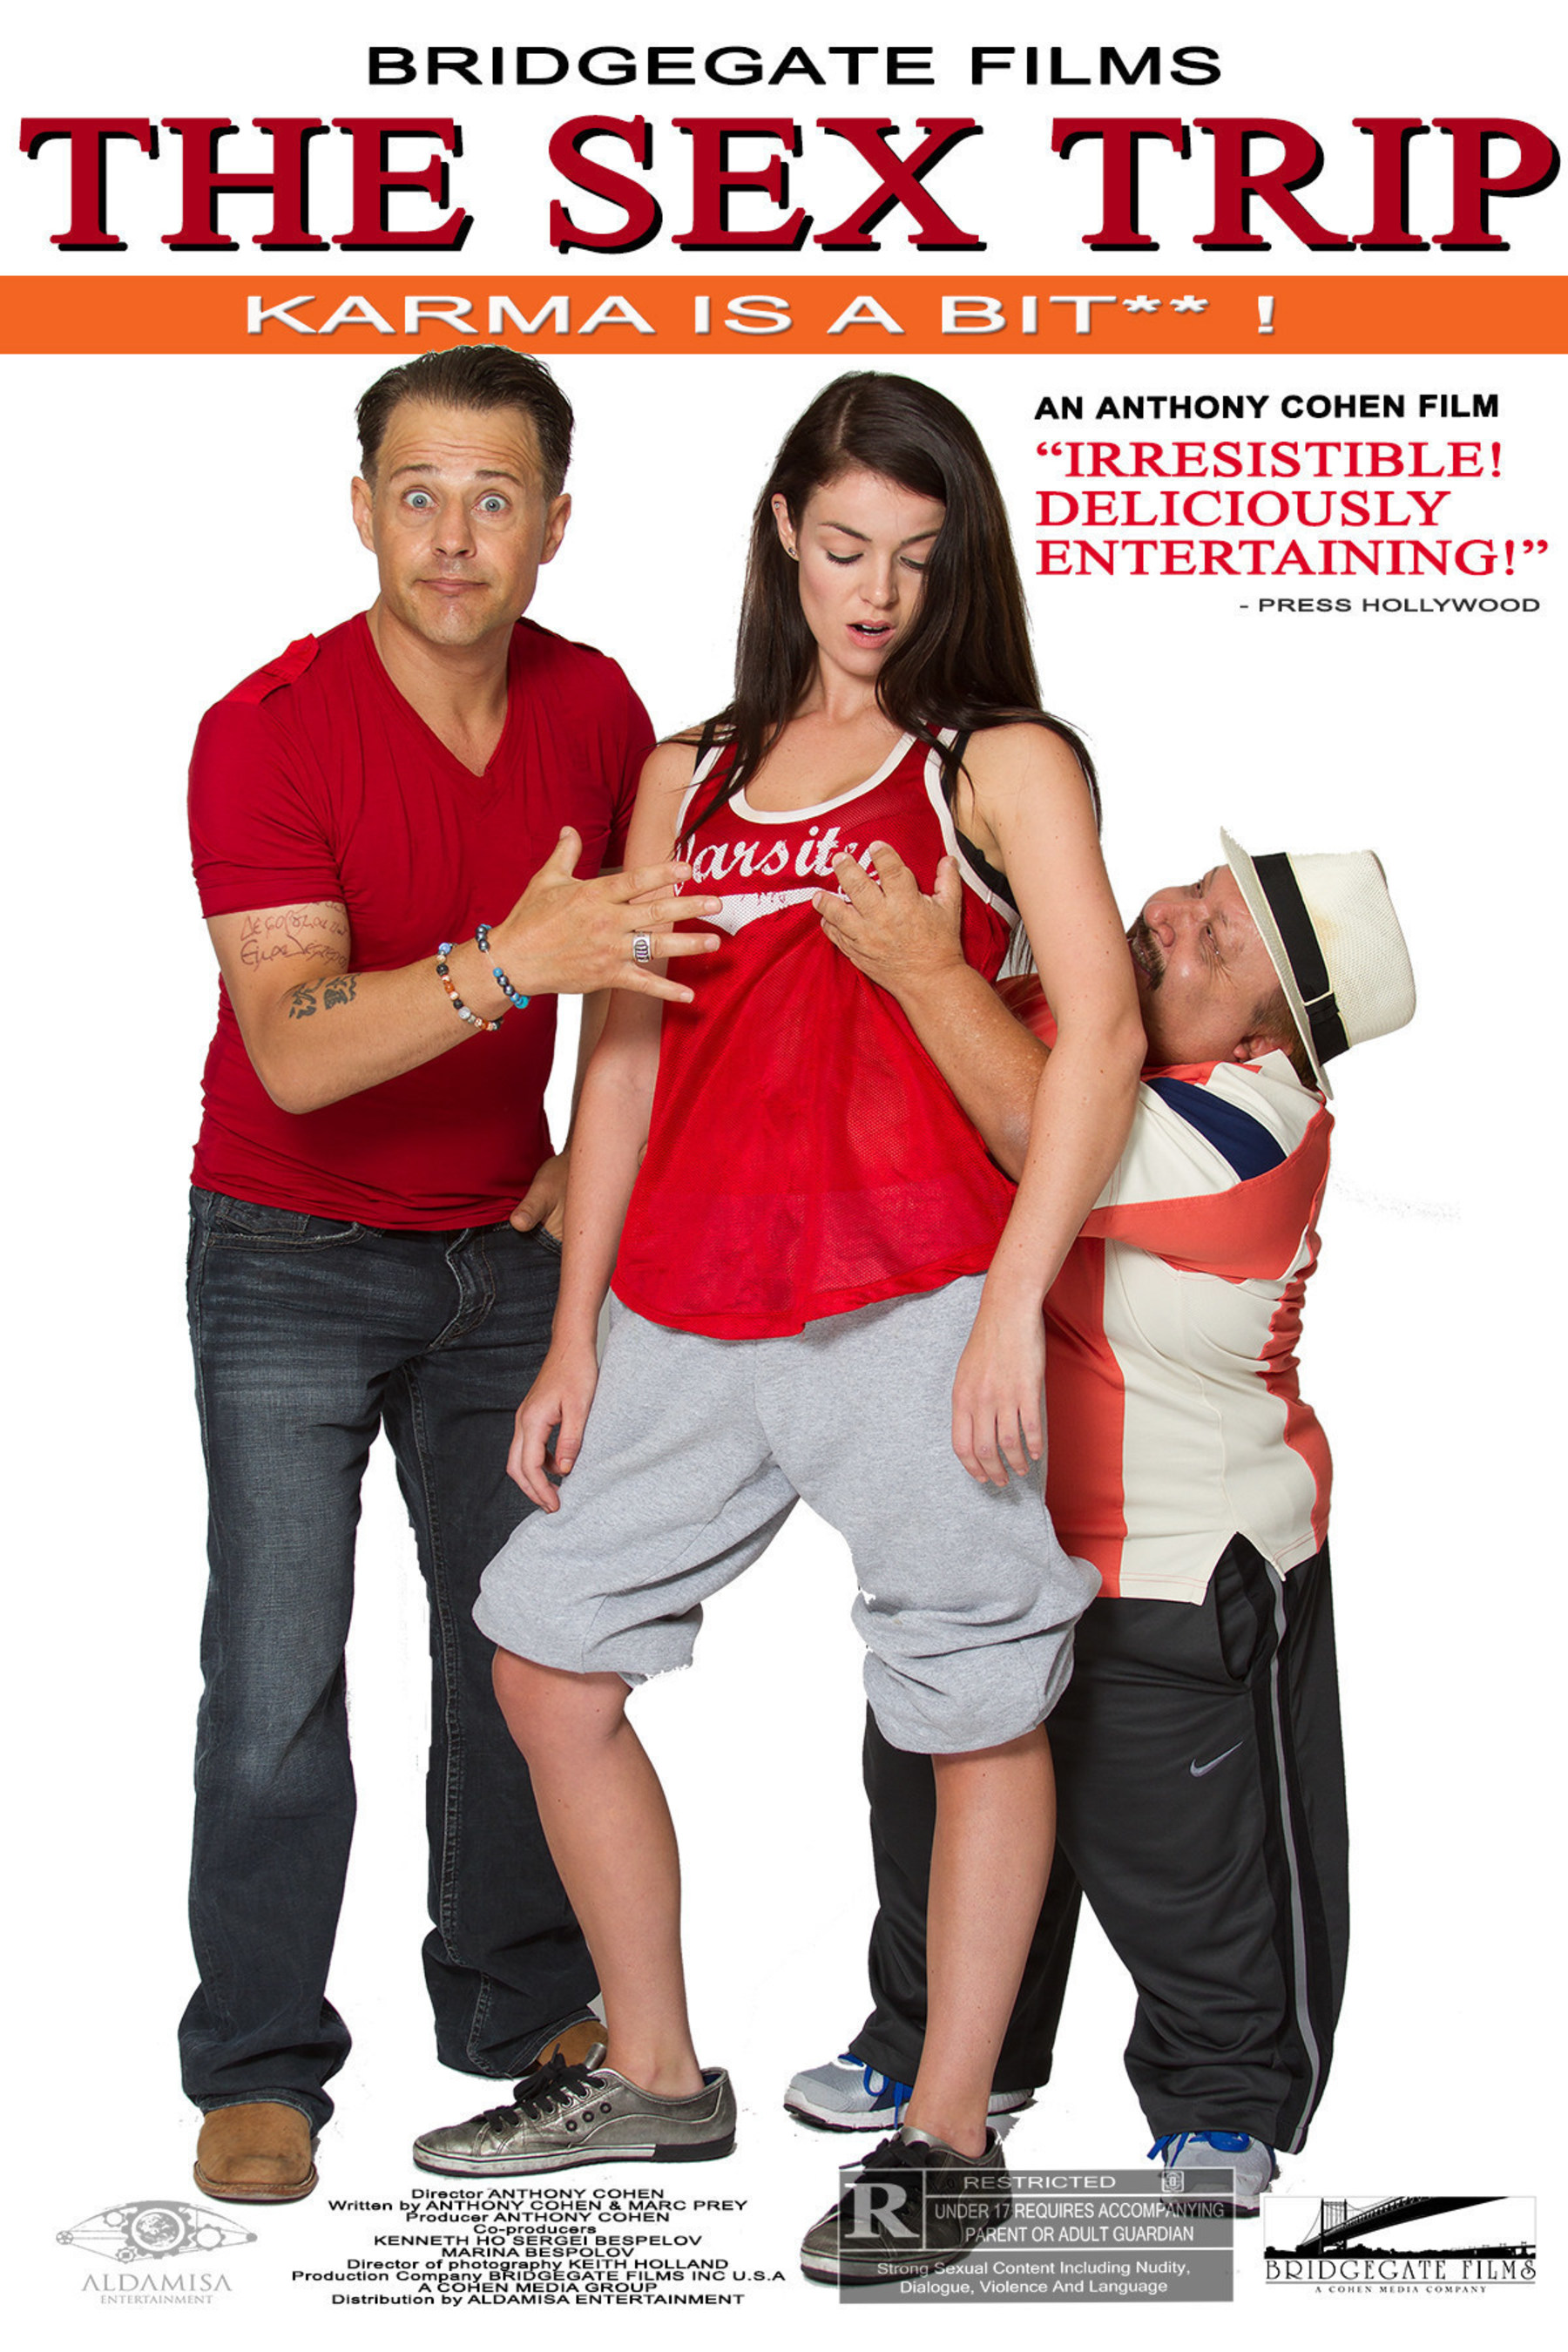 STALLONE, HANKS, Co-Star in this Hollywood's new romantic comedy film 'The Sex Trip', also Co-staring Chuy Bravo, Louis Mandylor, Jade Ramsey, Charlotte Price and Marc